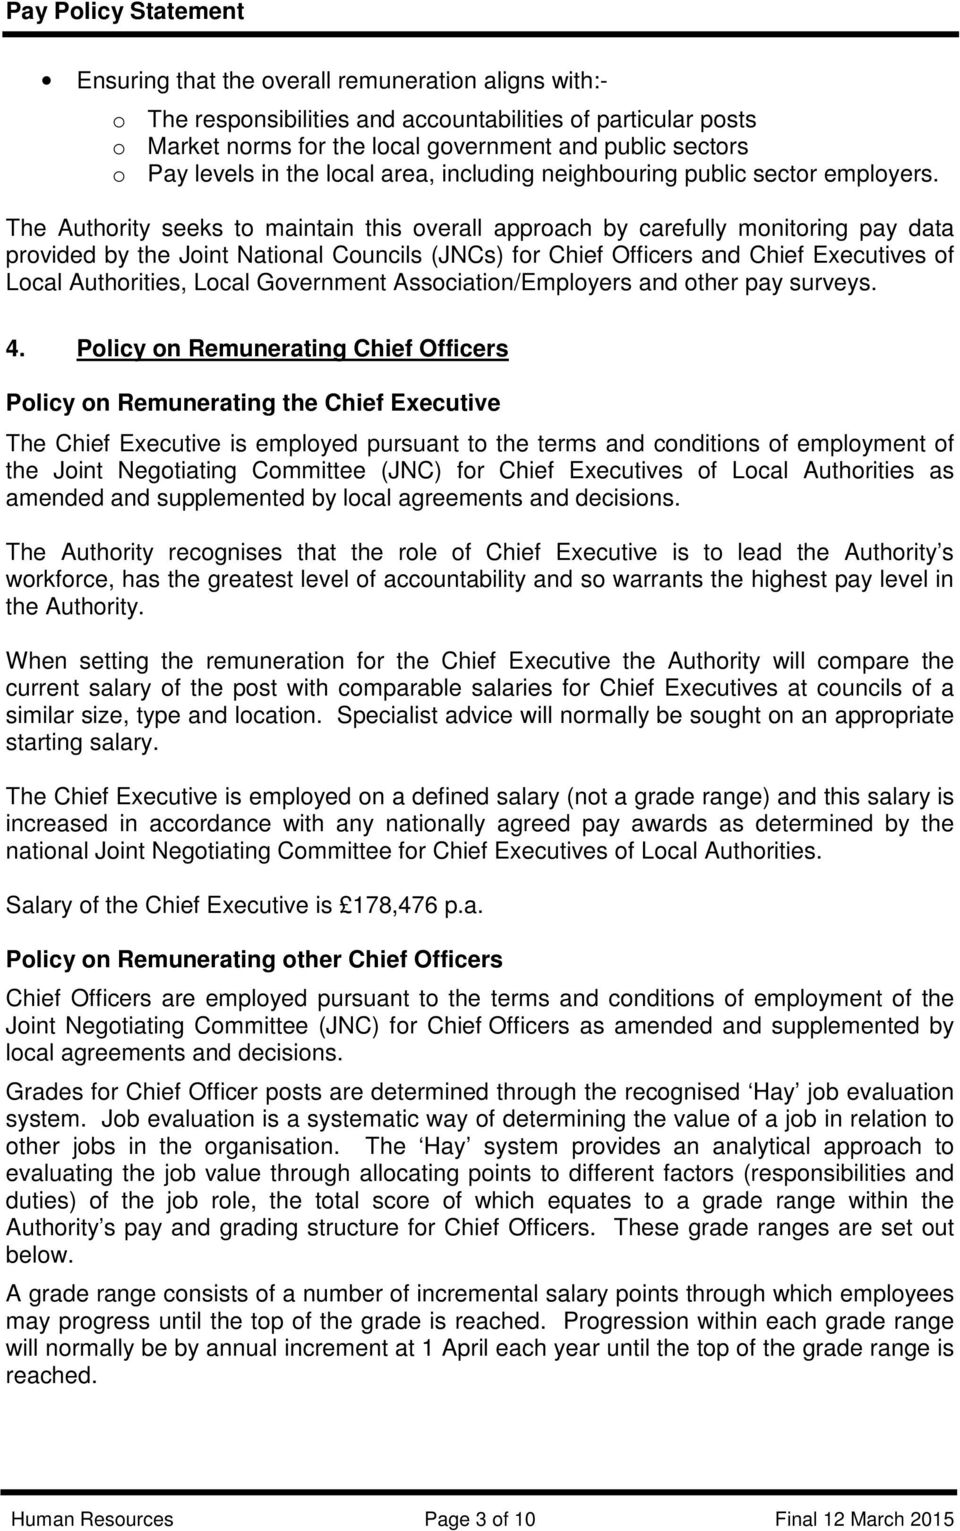 The Authority seeks to maintain this overall approach by carefully monitoring pay data provided by the Joint National Councils (JNCs) for Chief Officers and Chief Executives of Local Authorities,